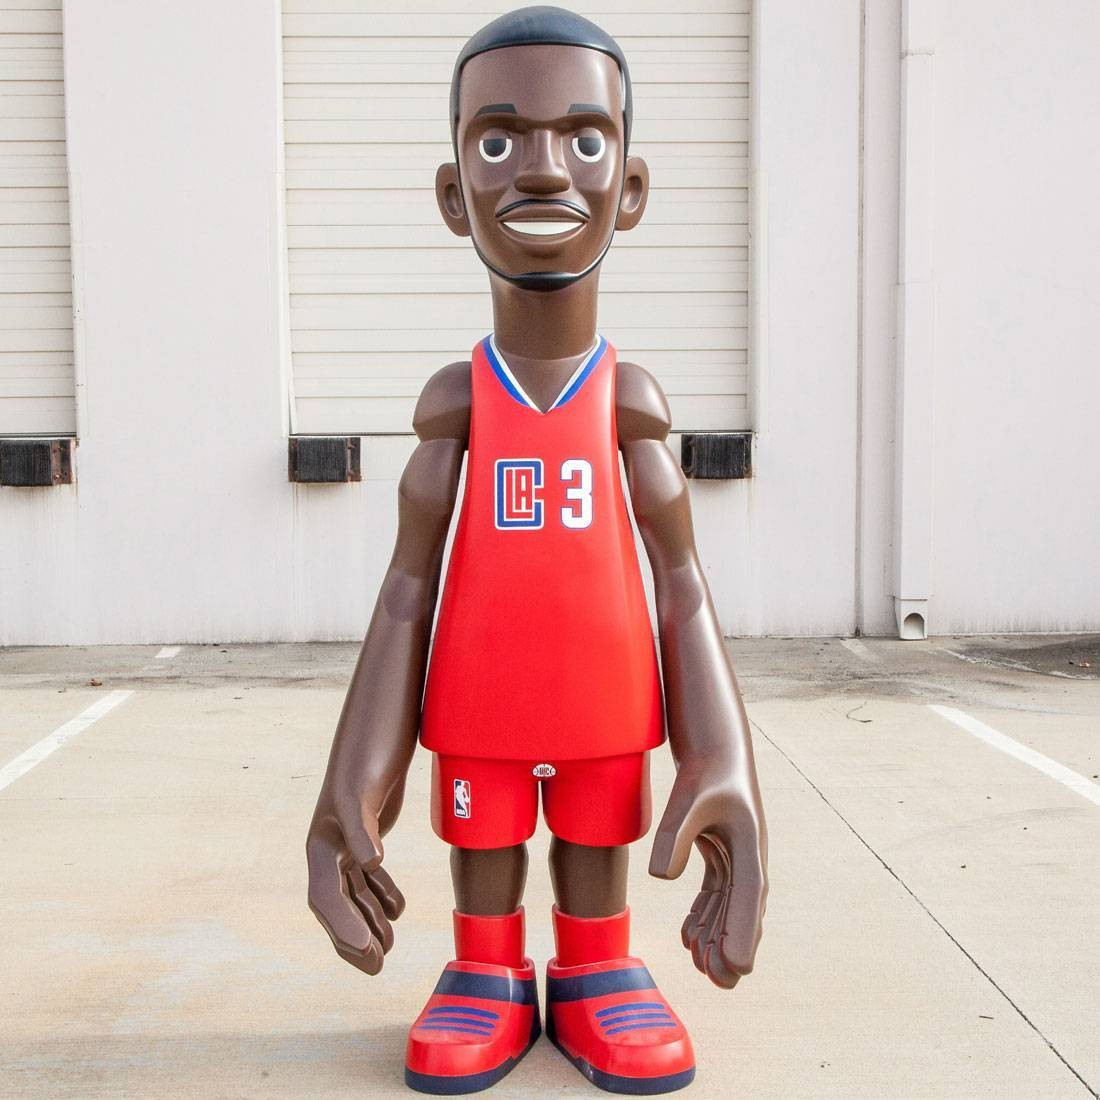 MINDstyle x NBA Los Angeles Clippers Chris Paul 7 Foot Statue (red)